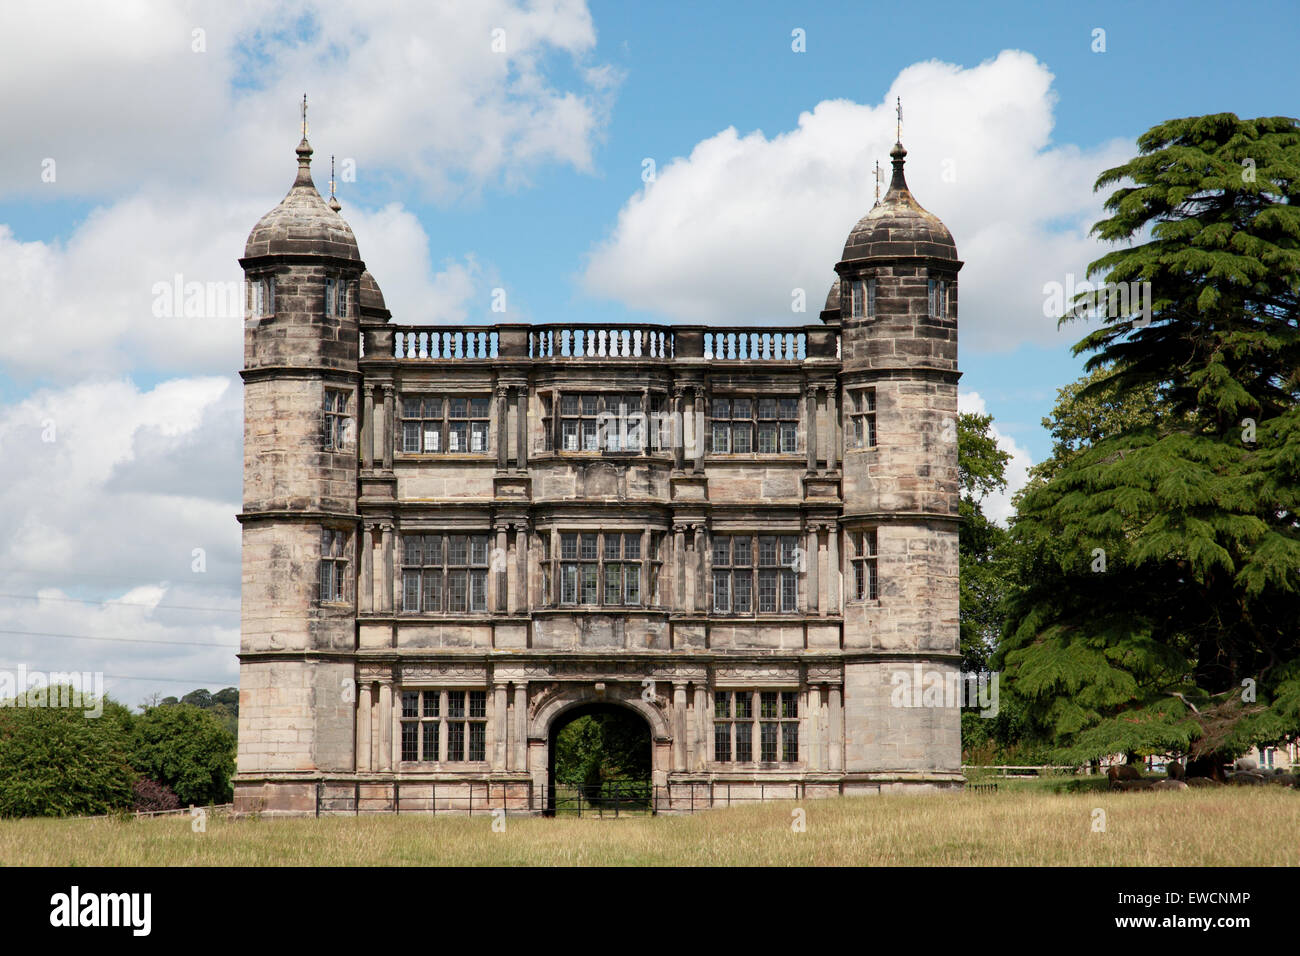 Tixall gatehouse in Staffordshire, built about 1580 and now owned by the Landmark Trust - Stock Image